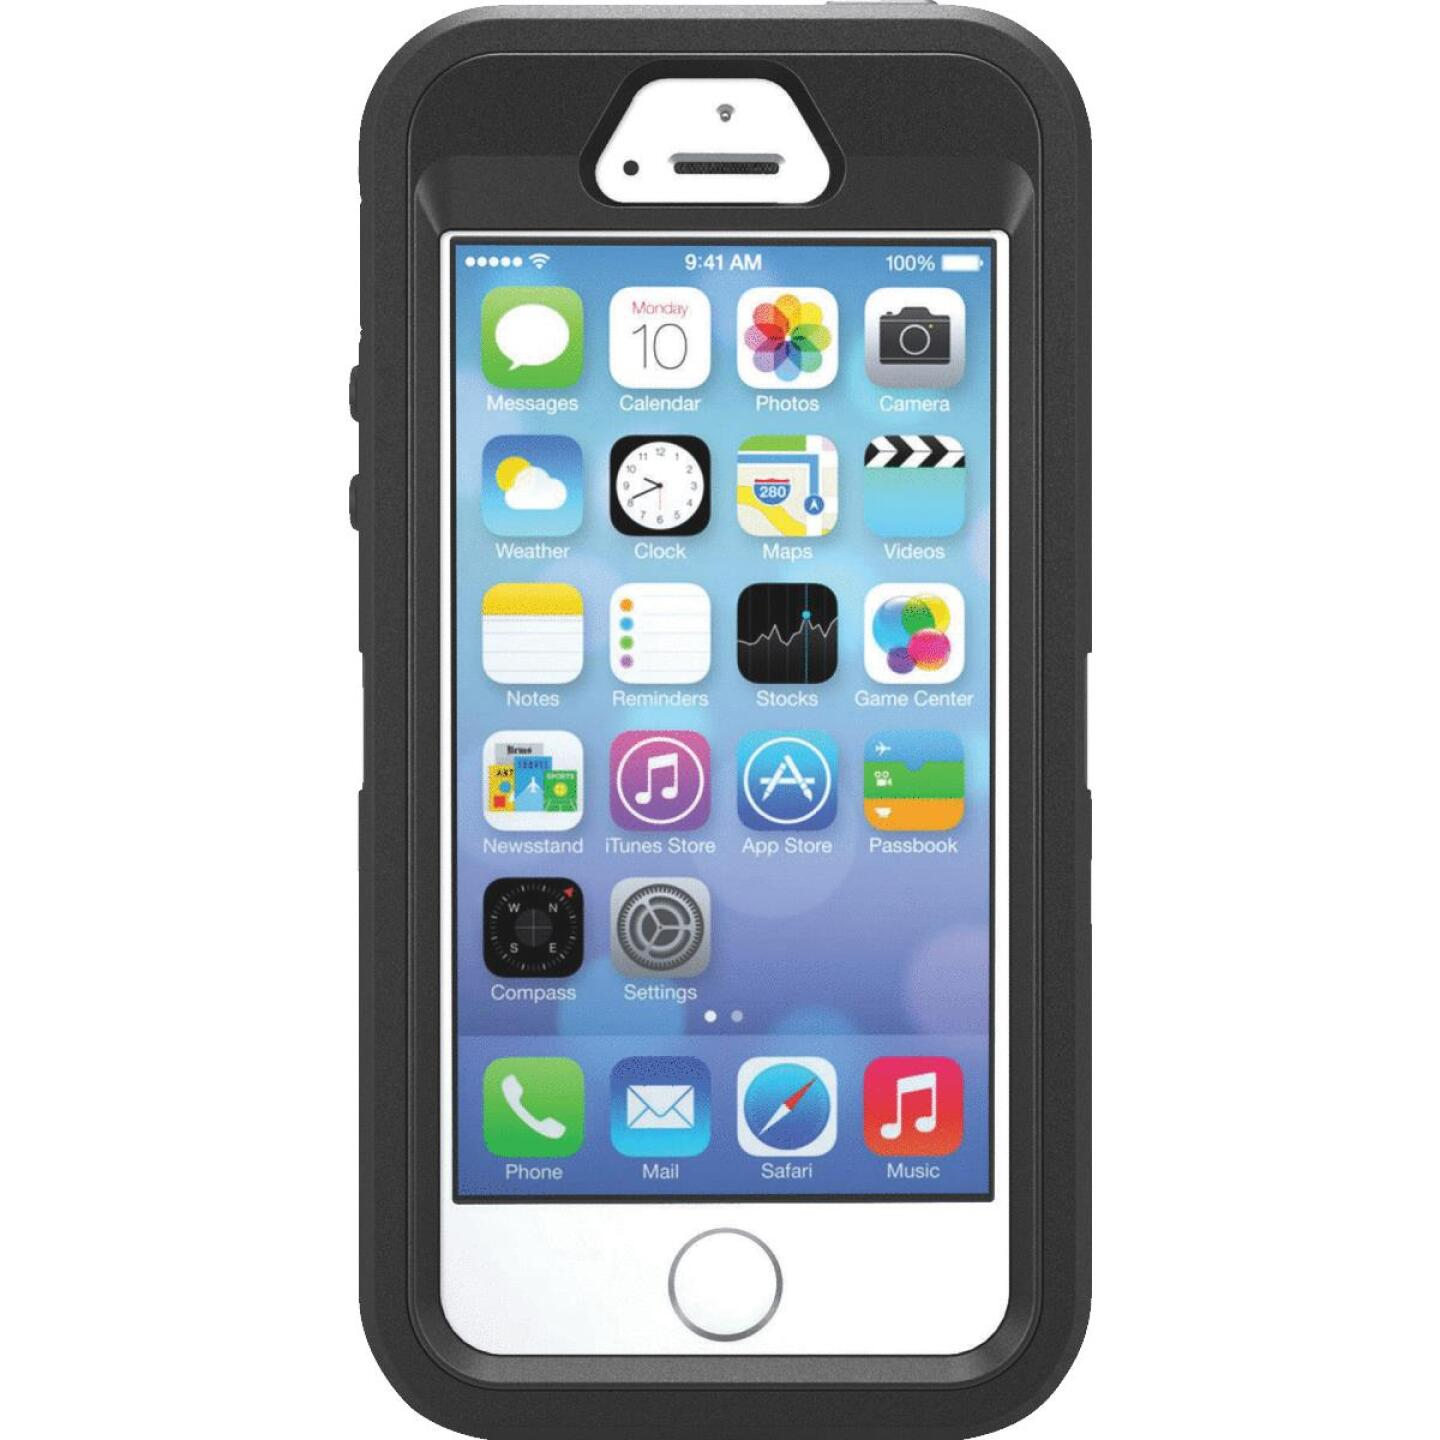 iPhone 5/5S Black OtterBox Cell Phone Case Image 1